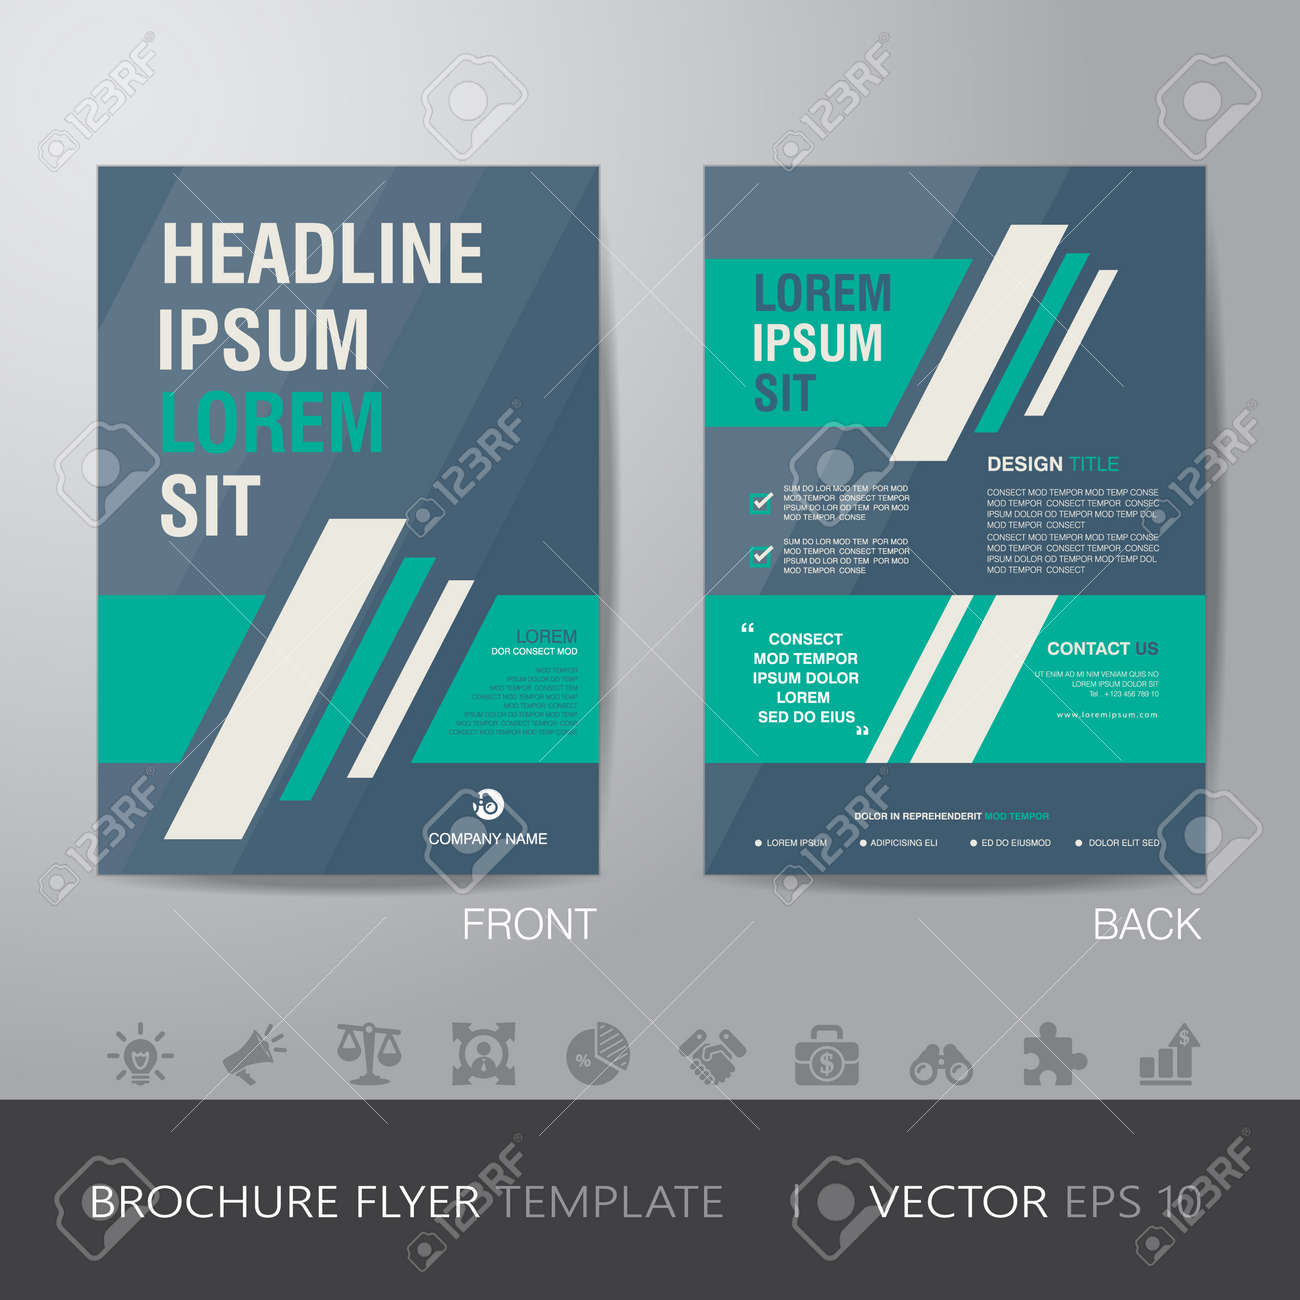 flyer background stock photos pictures royalty flyer flyer background simple business green and blue brochure flyer design layout template in a4 size